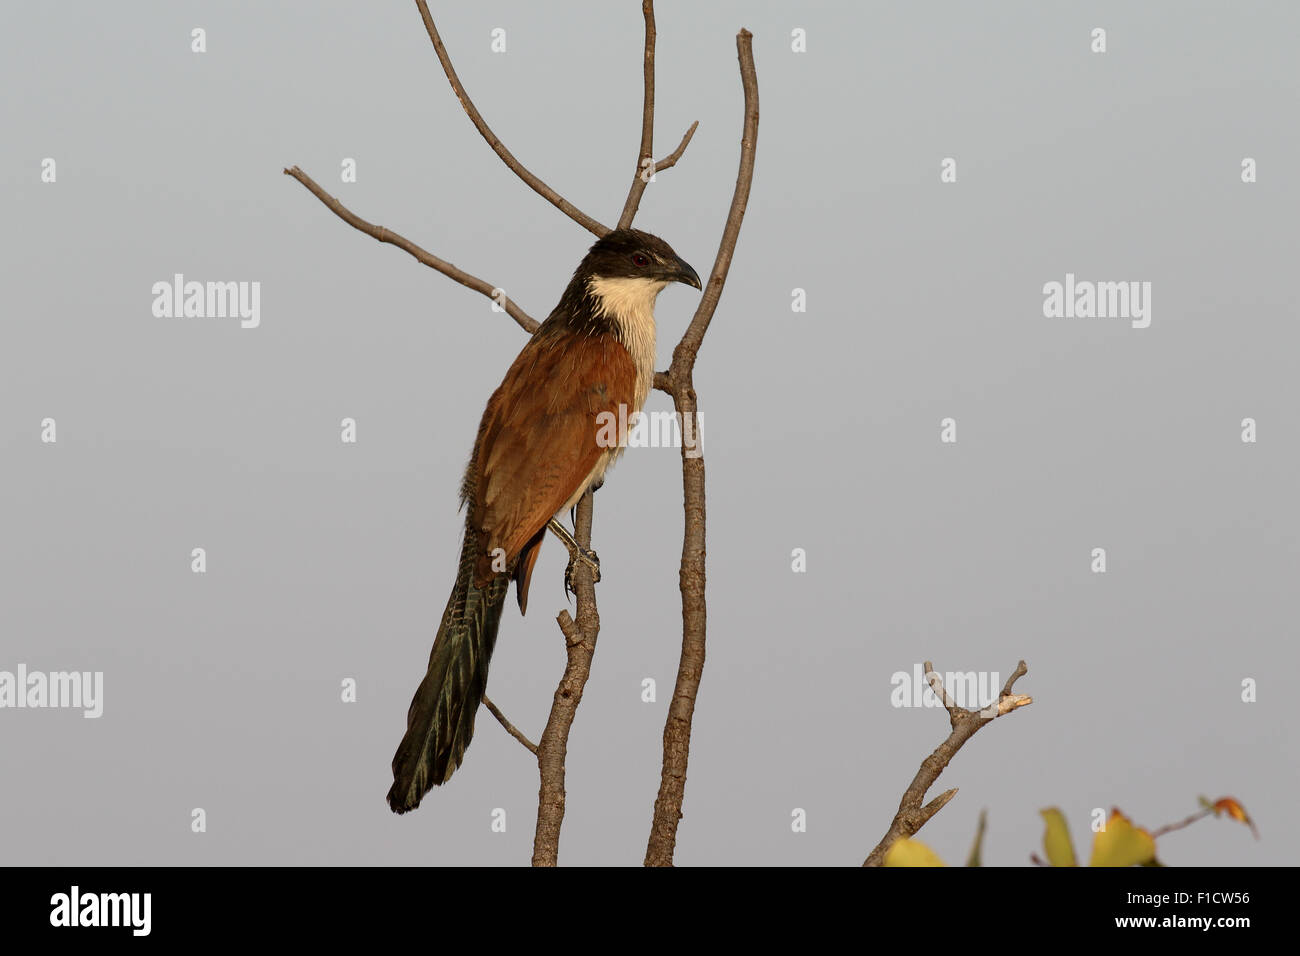 Burchells coucal, Centropus burchelli, single bird on branch, South Africa, August 2015 - Stock Image